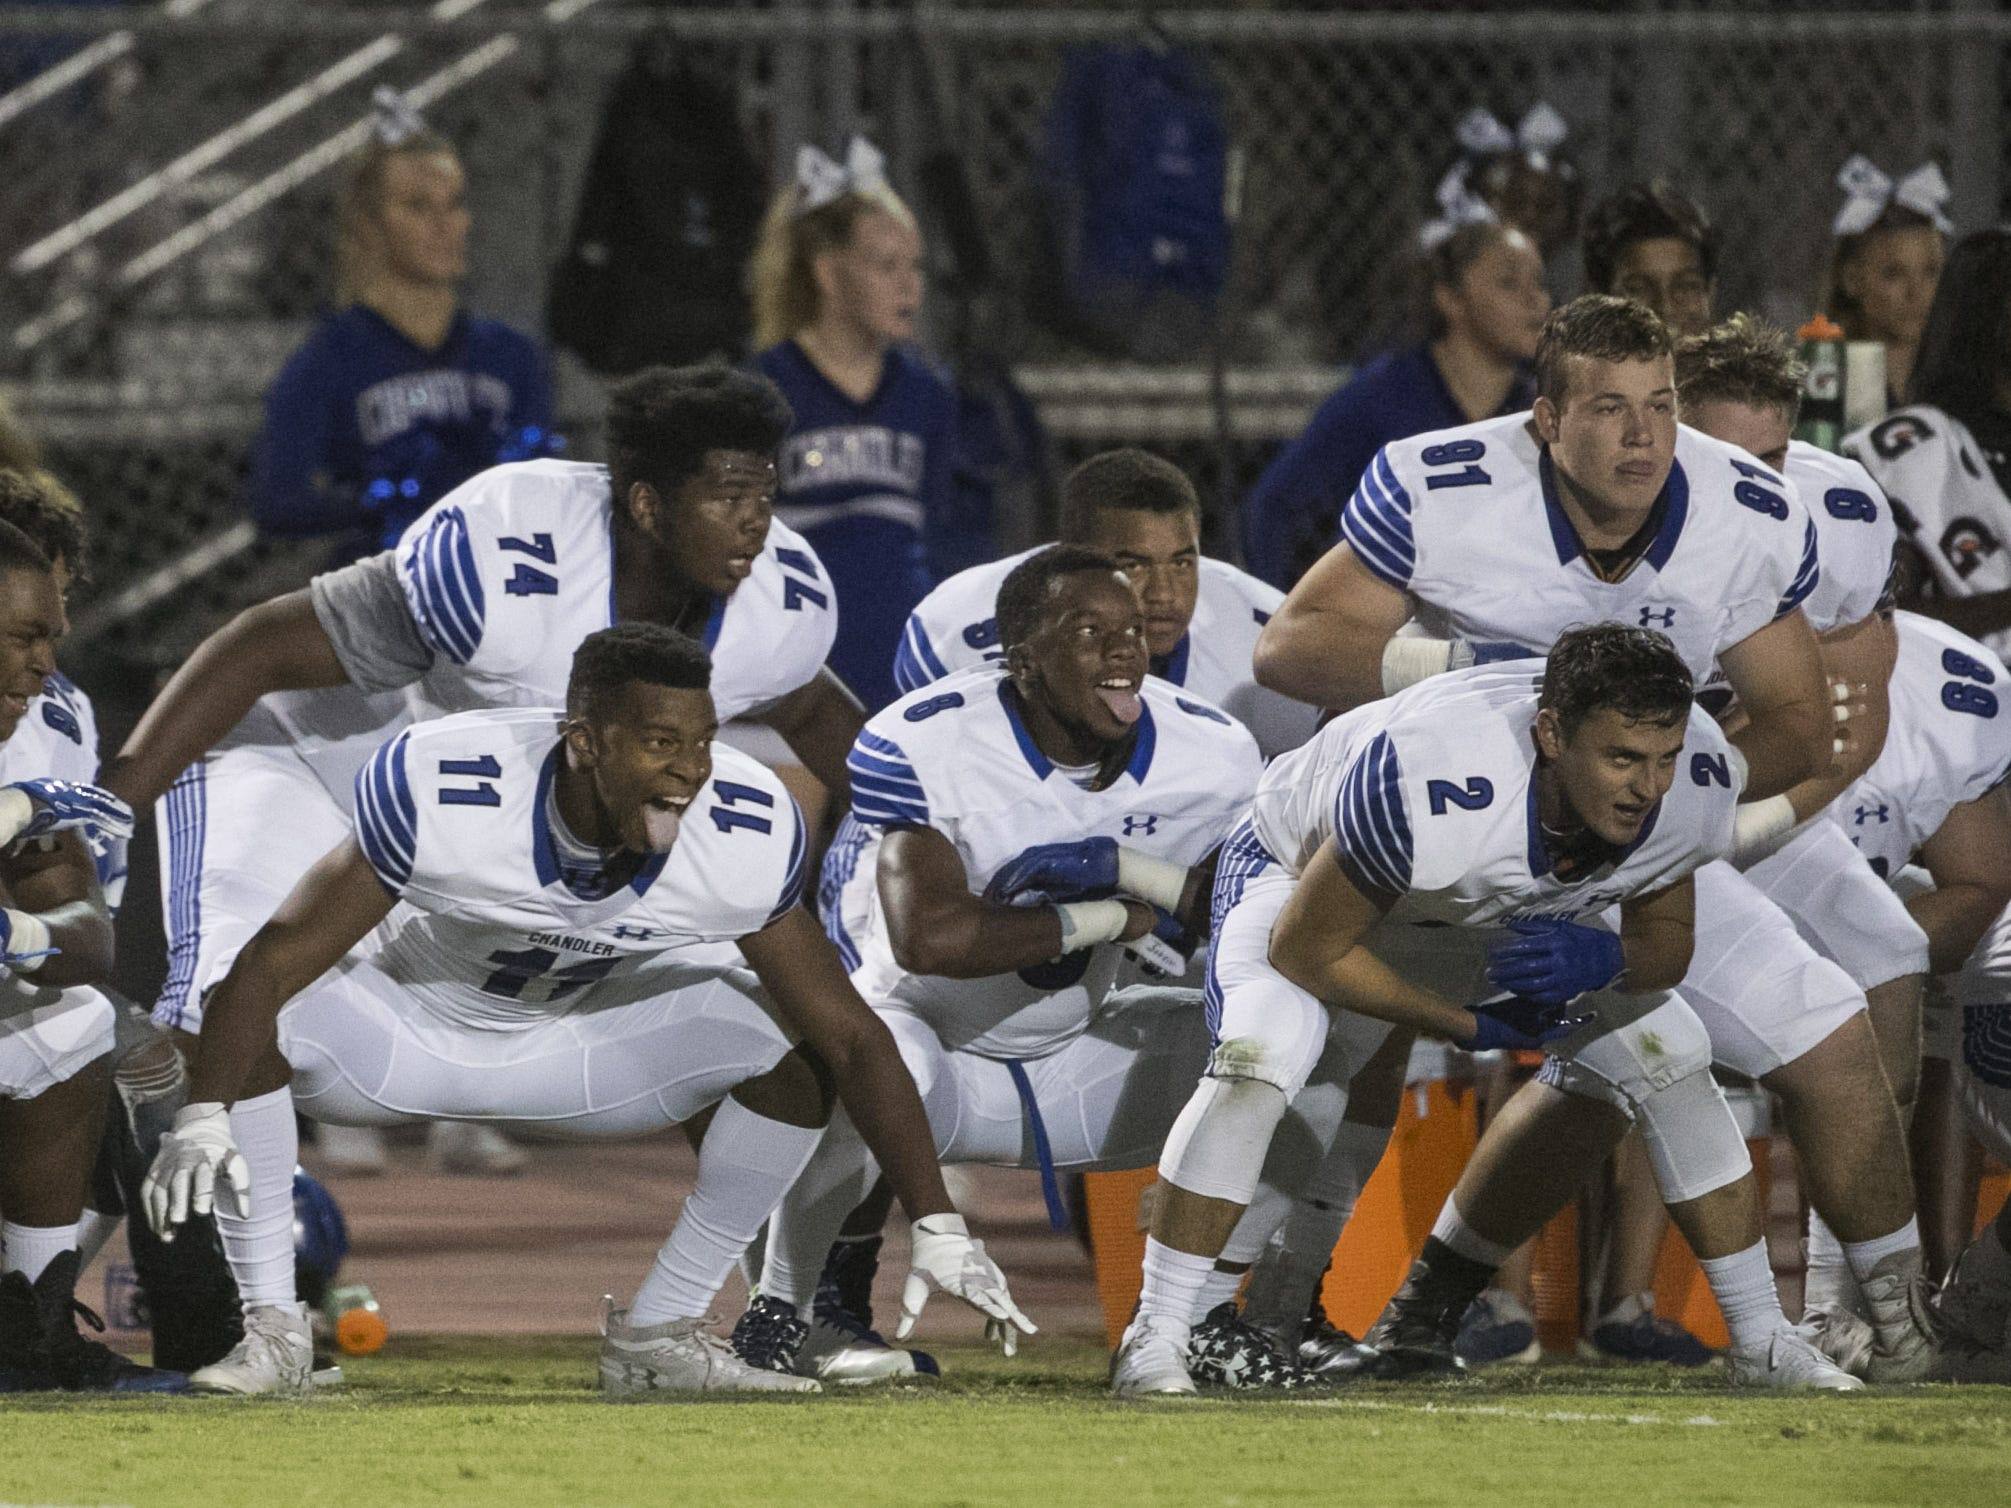 Chandler's Avery Carrington (11) sticks out his tongue as the team performs a 'hake' dance before a game at Perry High School in Gilbert, Ariz. on Sept. 28, 2018.  #azhsfb